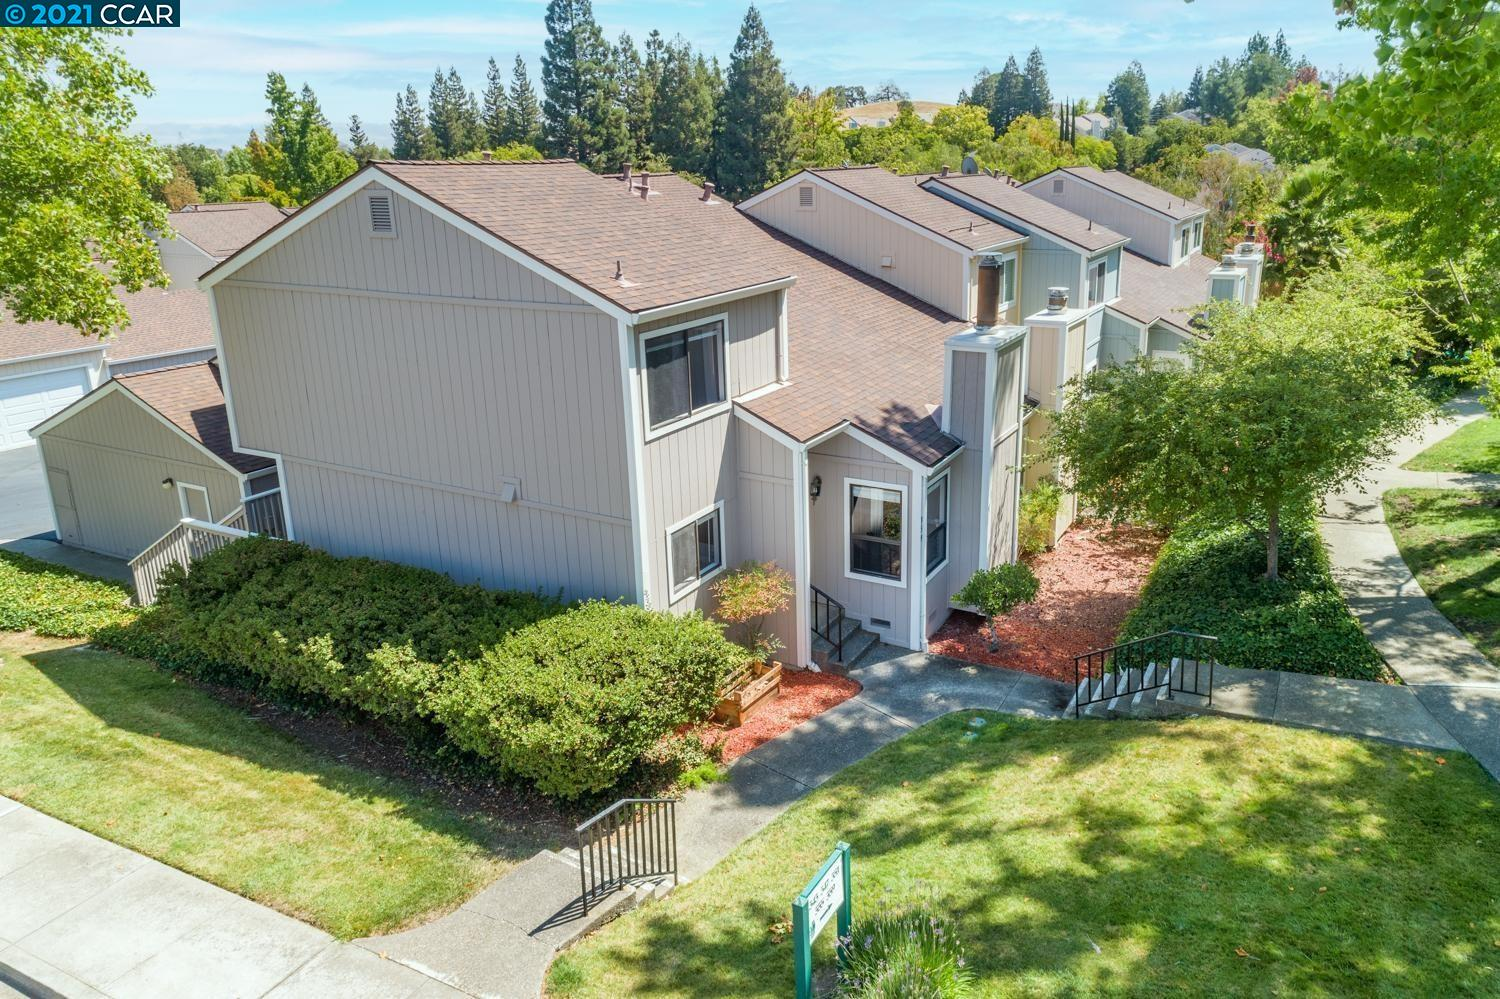 Lovely end unit with lots of light and nearby parking.  Great location facing greenbelt.  Open airy outside deck.  Nicely updated kitchen and bathrooms. Vaulted ceilings.  New carpet, new laminate flooring.  2 car garage. Community pool, spa, tennis courts, basketball & more!